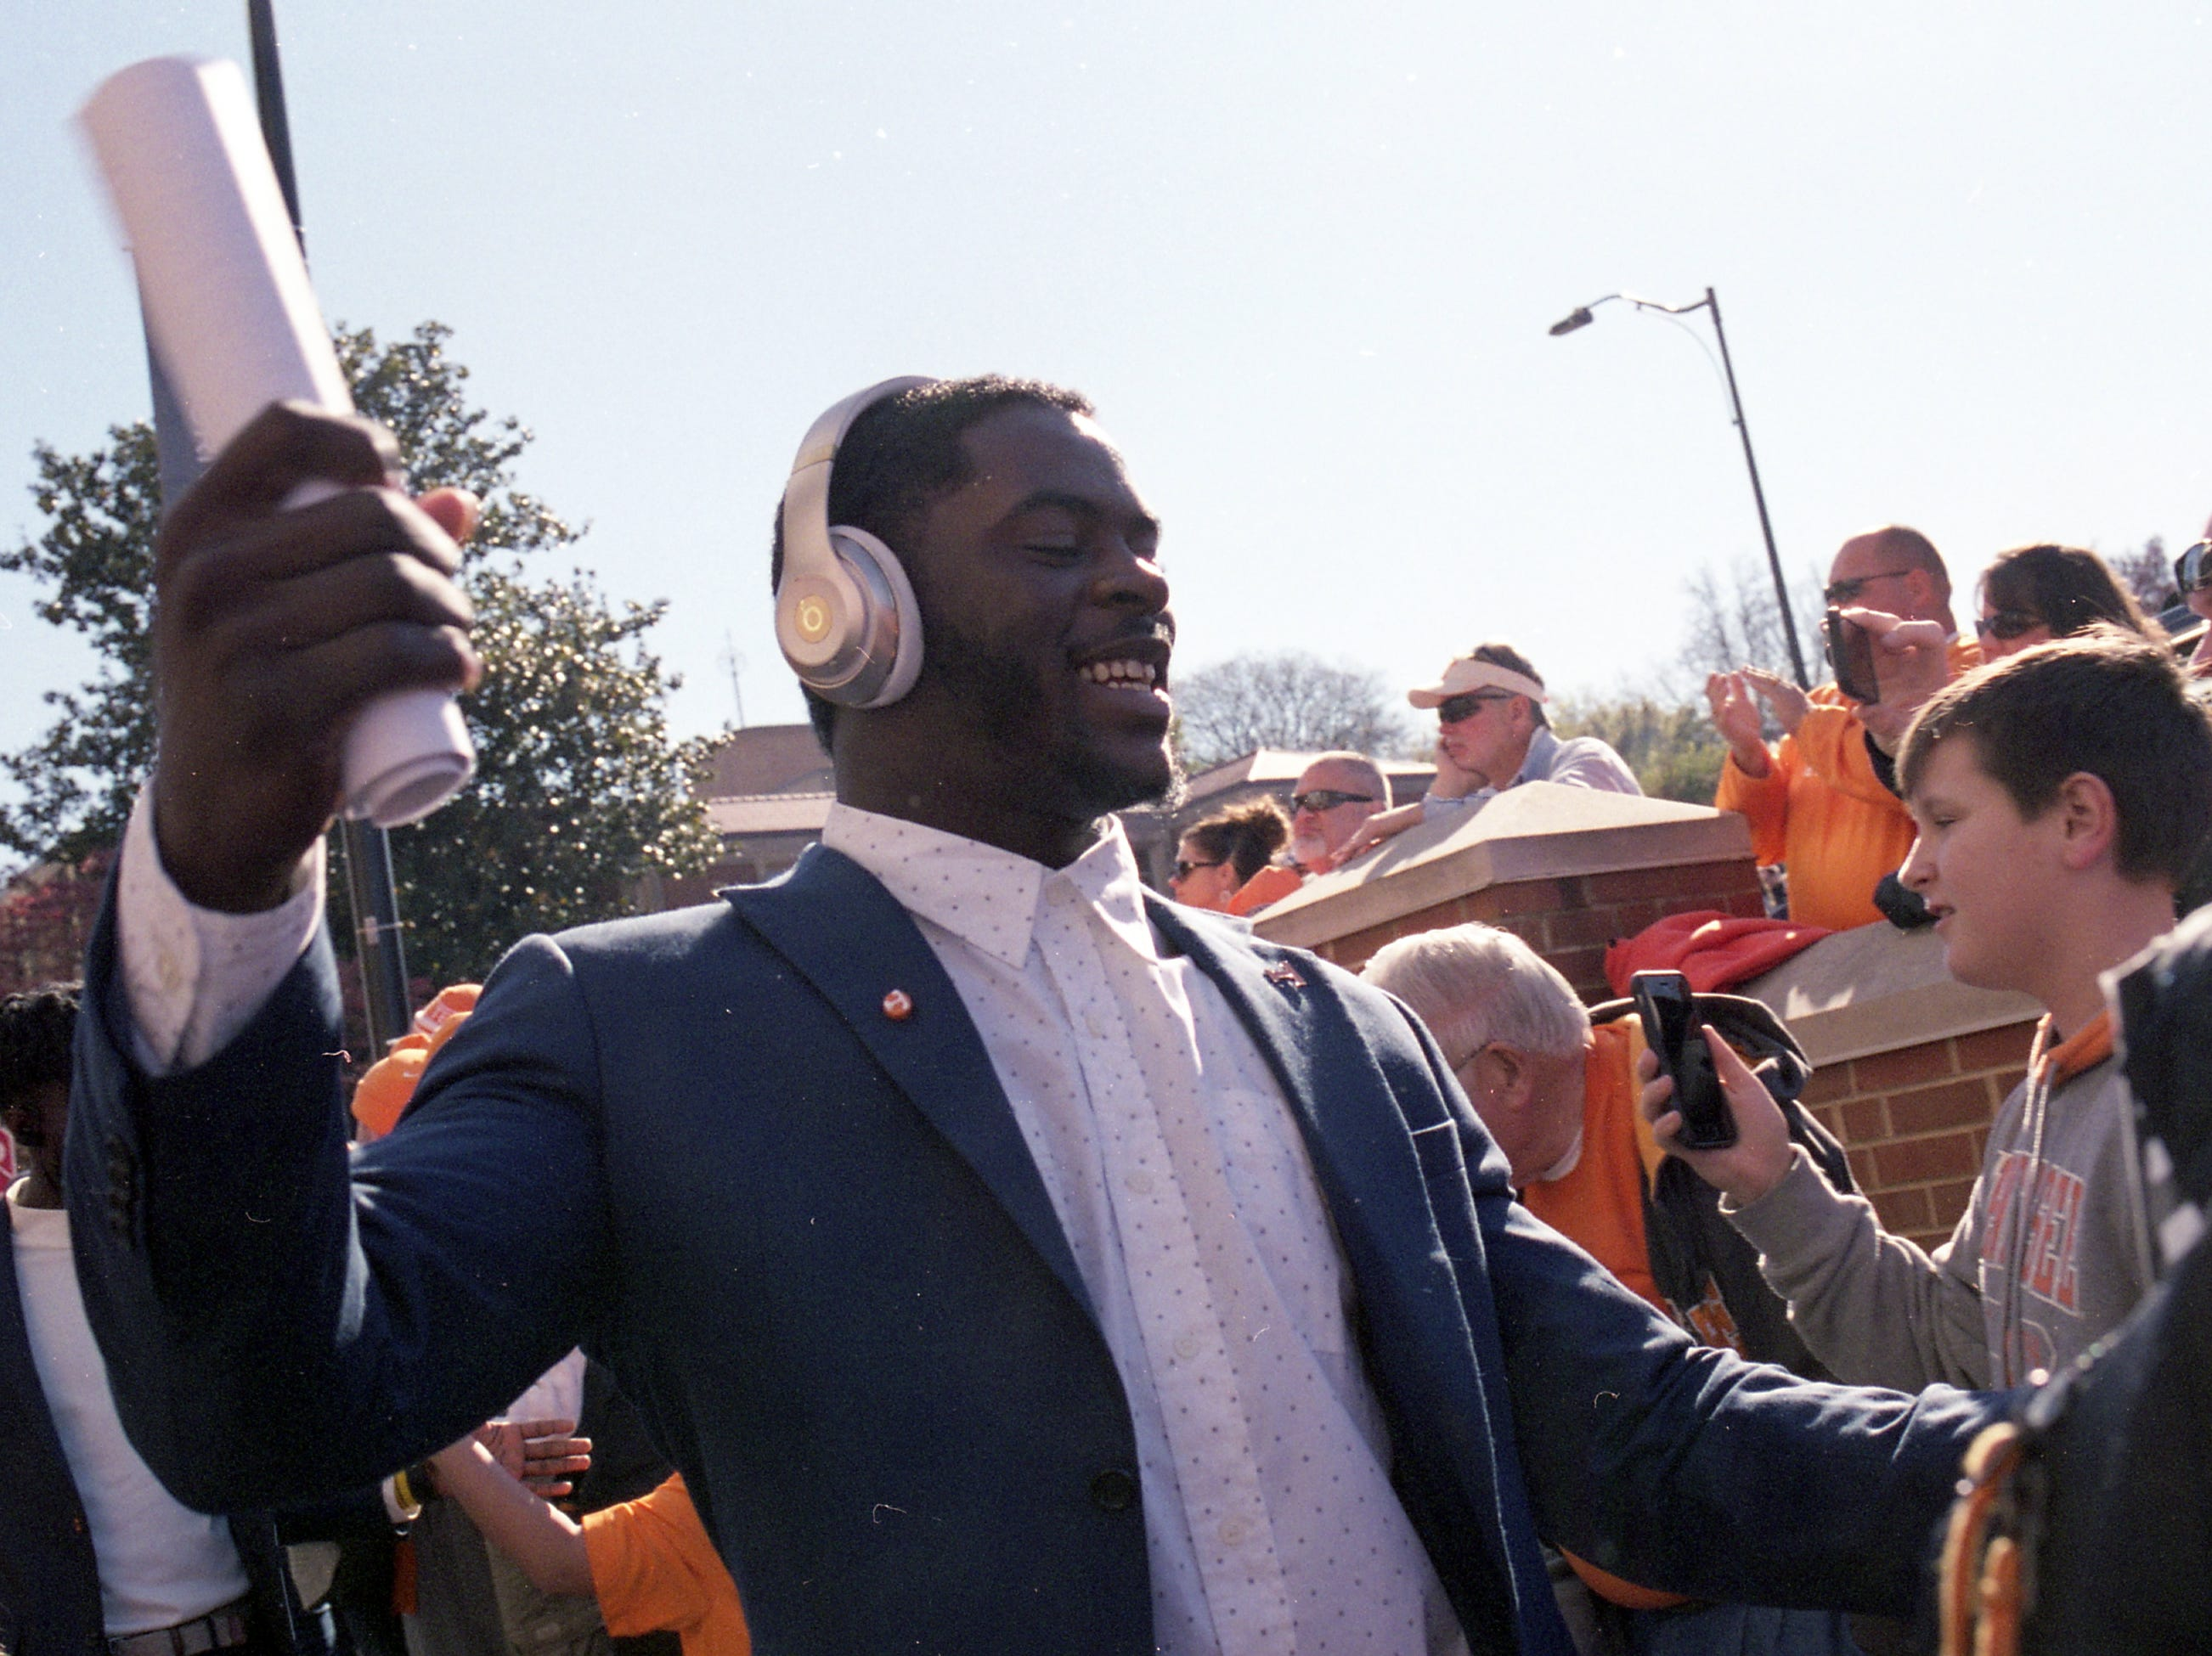 Tennessee linebacker Darrell Taylor (19) greets fans at the Vol Walk during a game between Tennessee and Missouri at Neyland Stadium in Knoxville, Tennessee on Saturday, November 17, 2018.